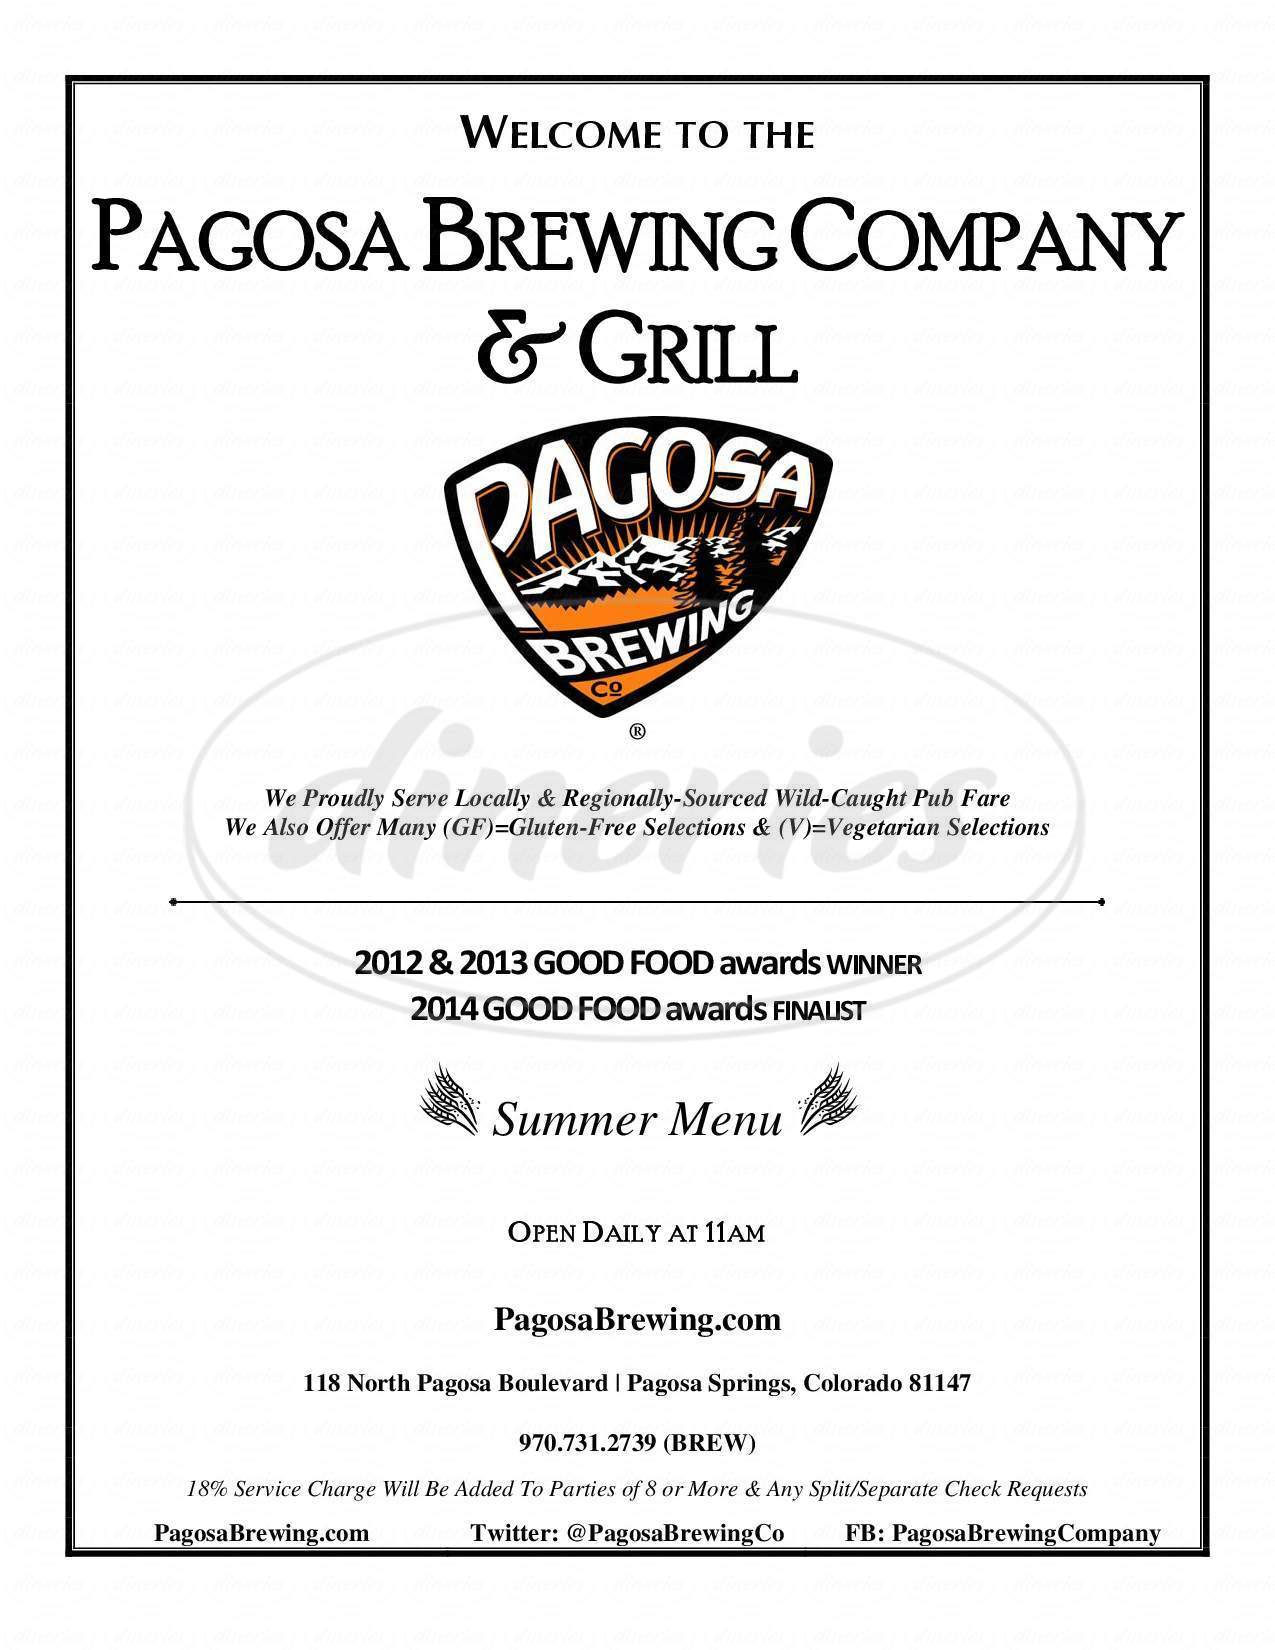 menu for Pagosa Brewing Co.